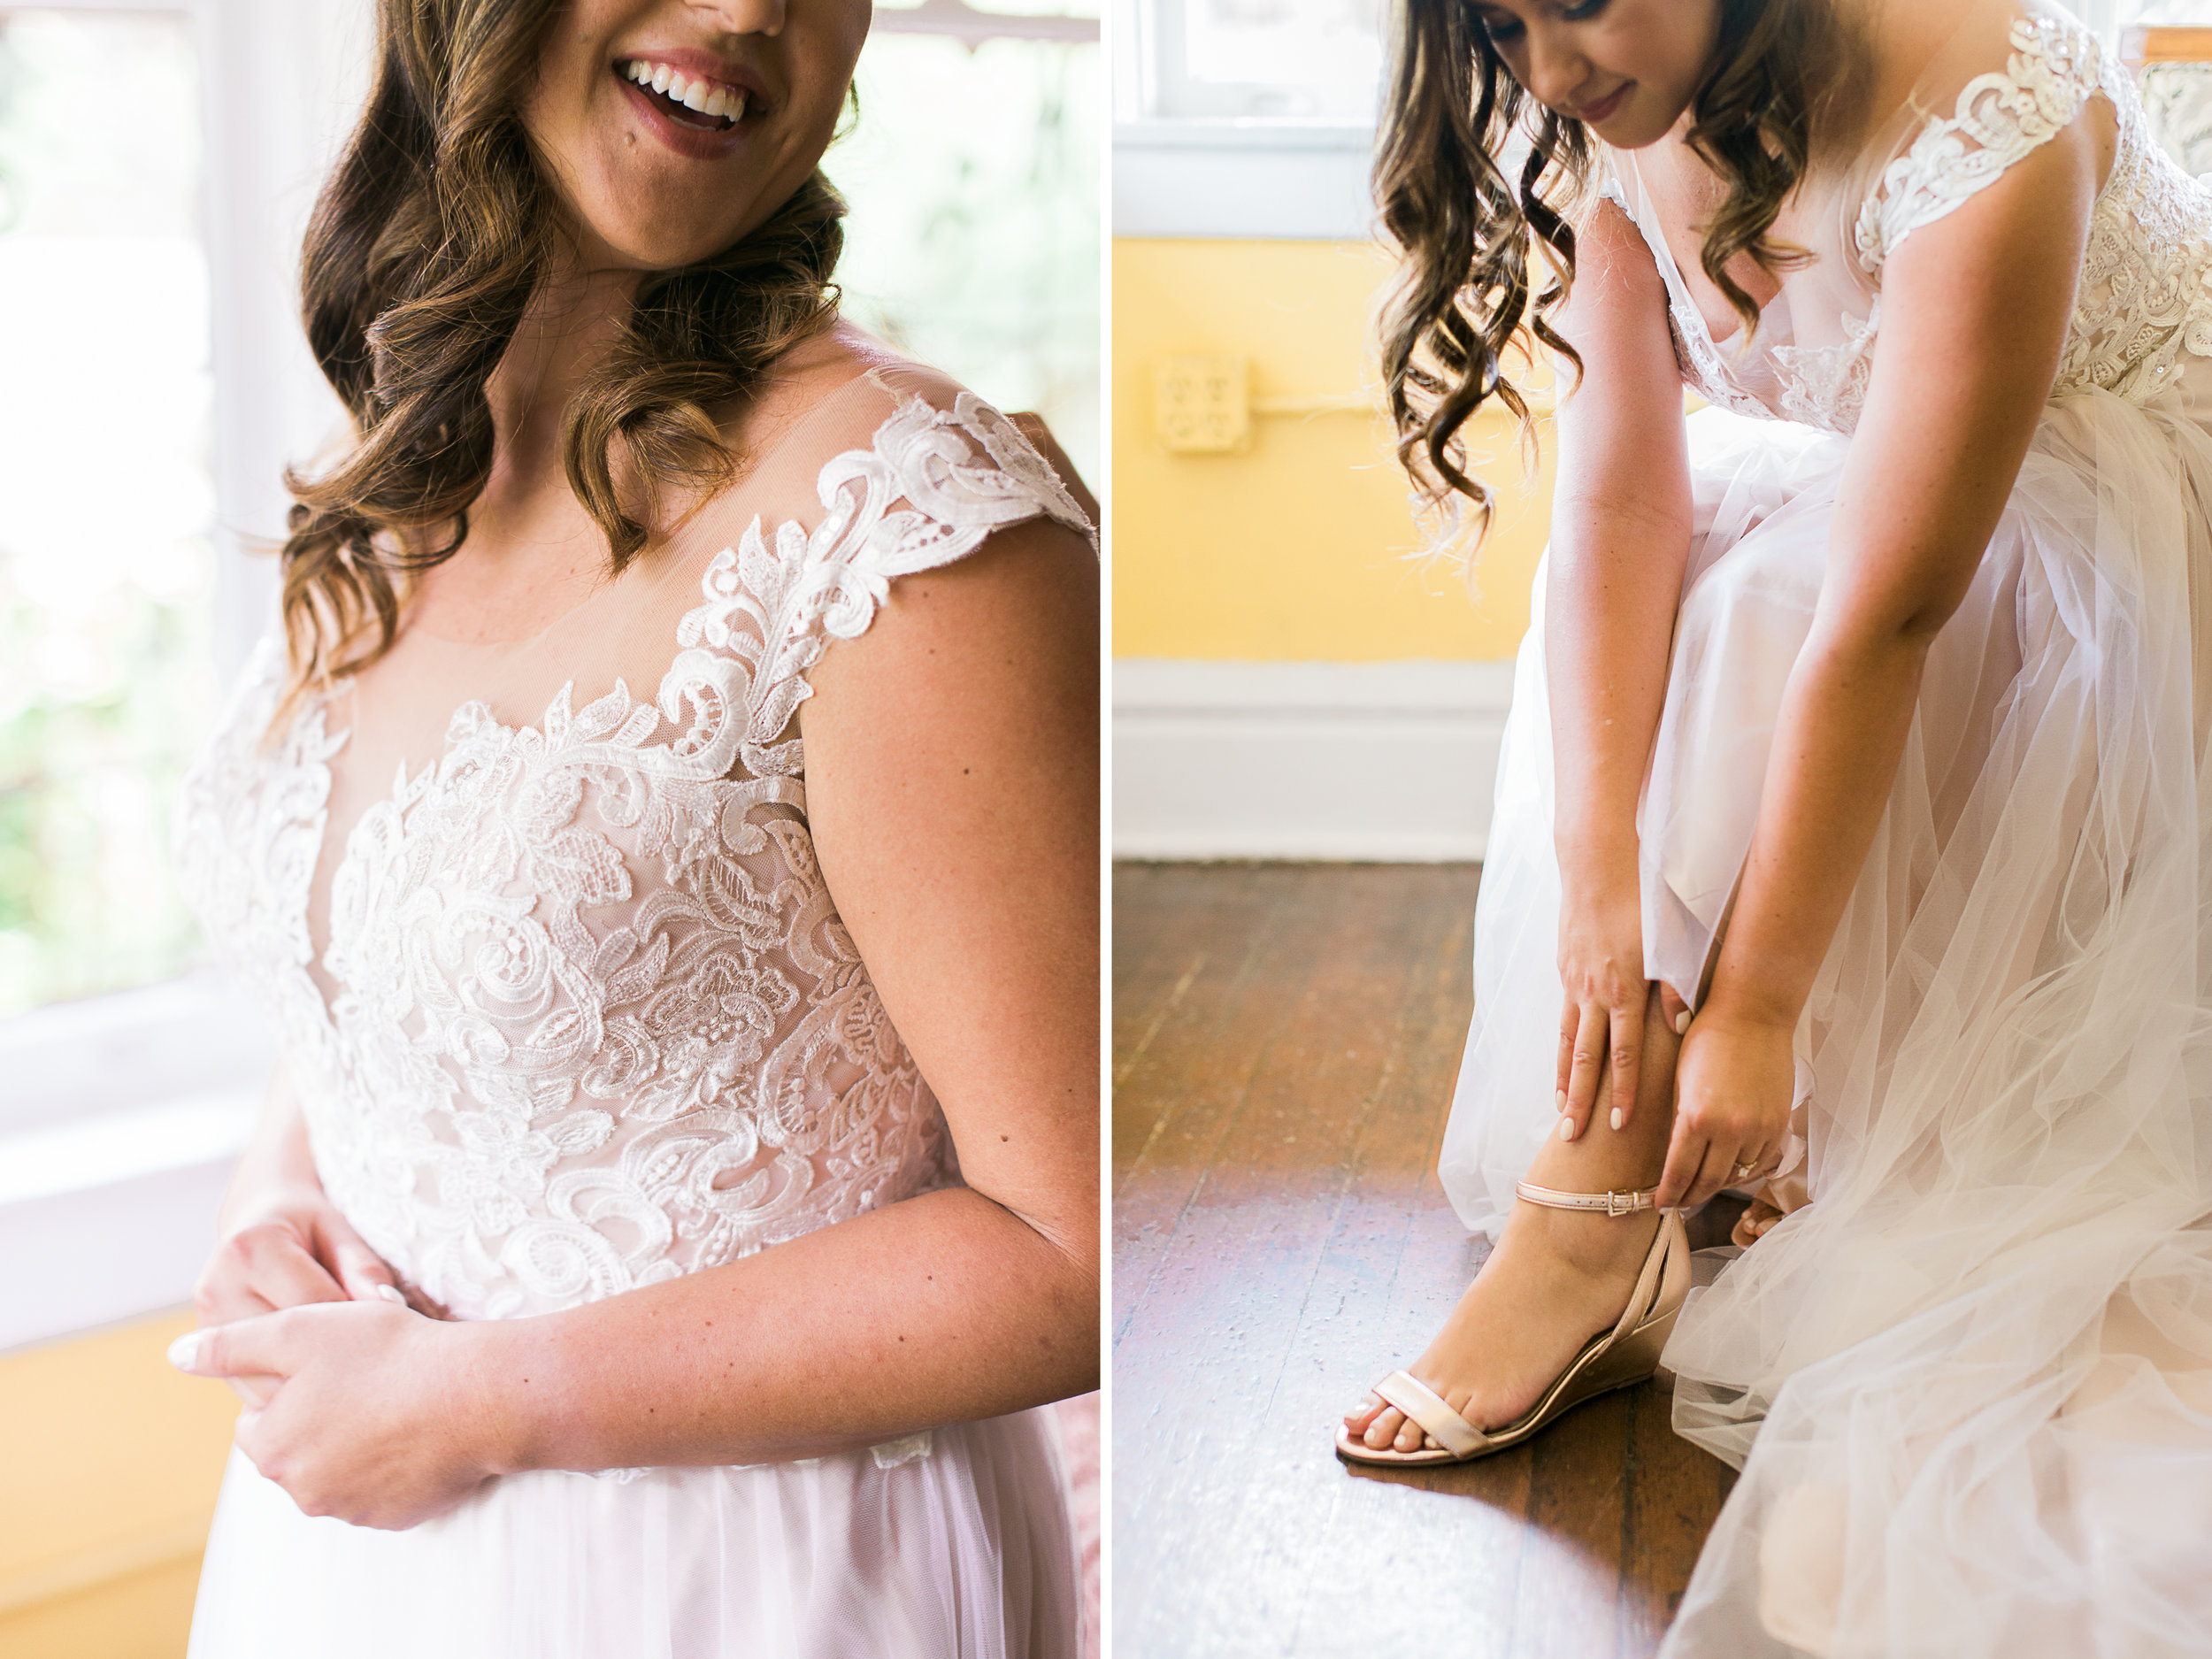 SmithWedding_HoustonTexasWeddingPhotographer_LightandAiry_FilmPhotographer_AvantGarden_HoustonHeightsWedding4.jpg